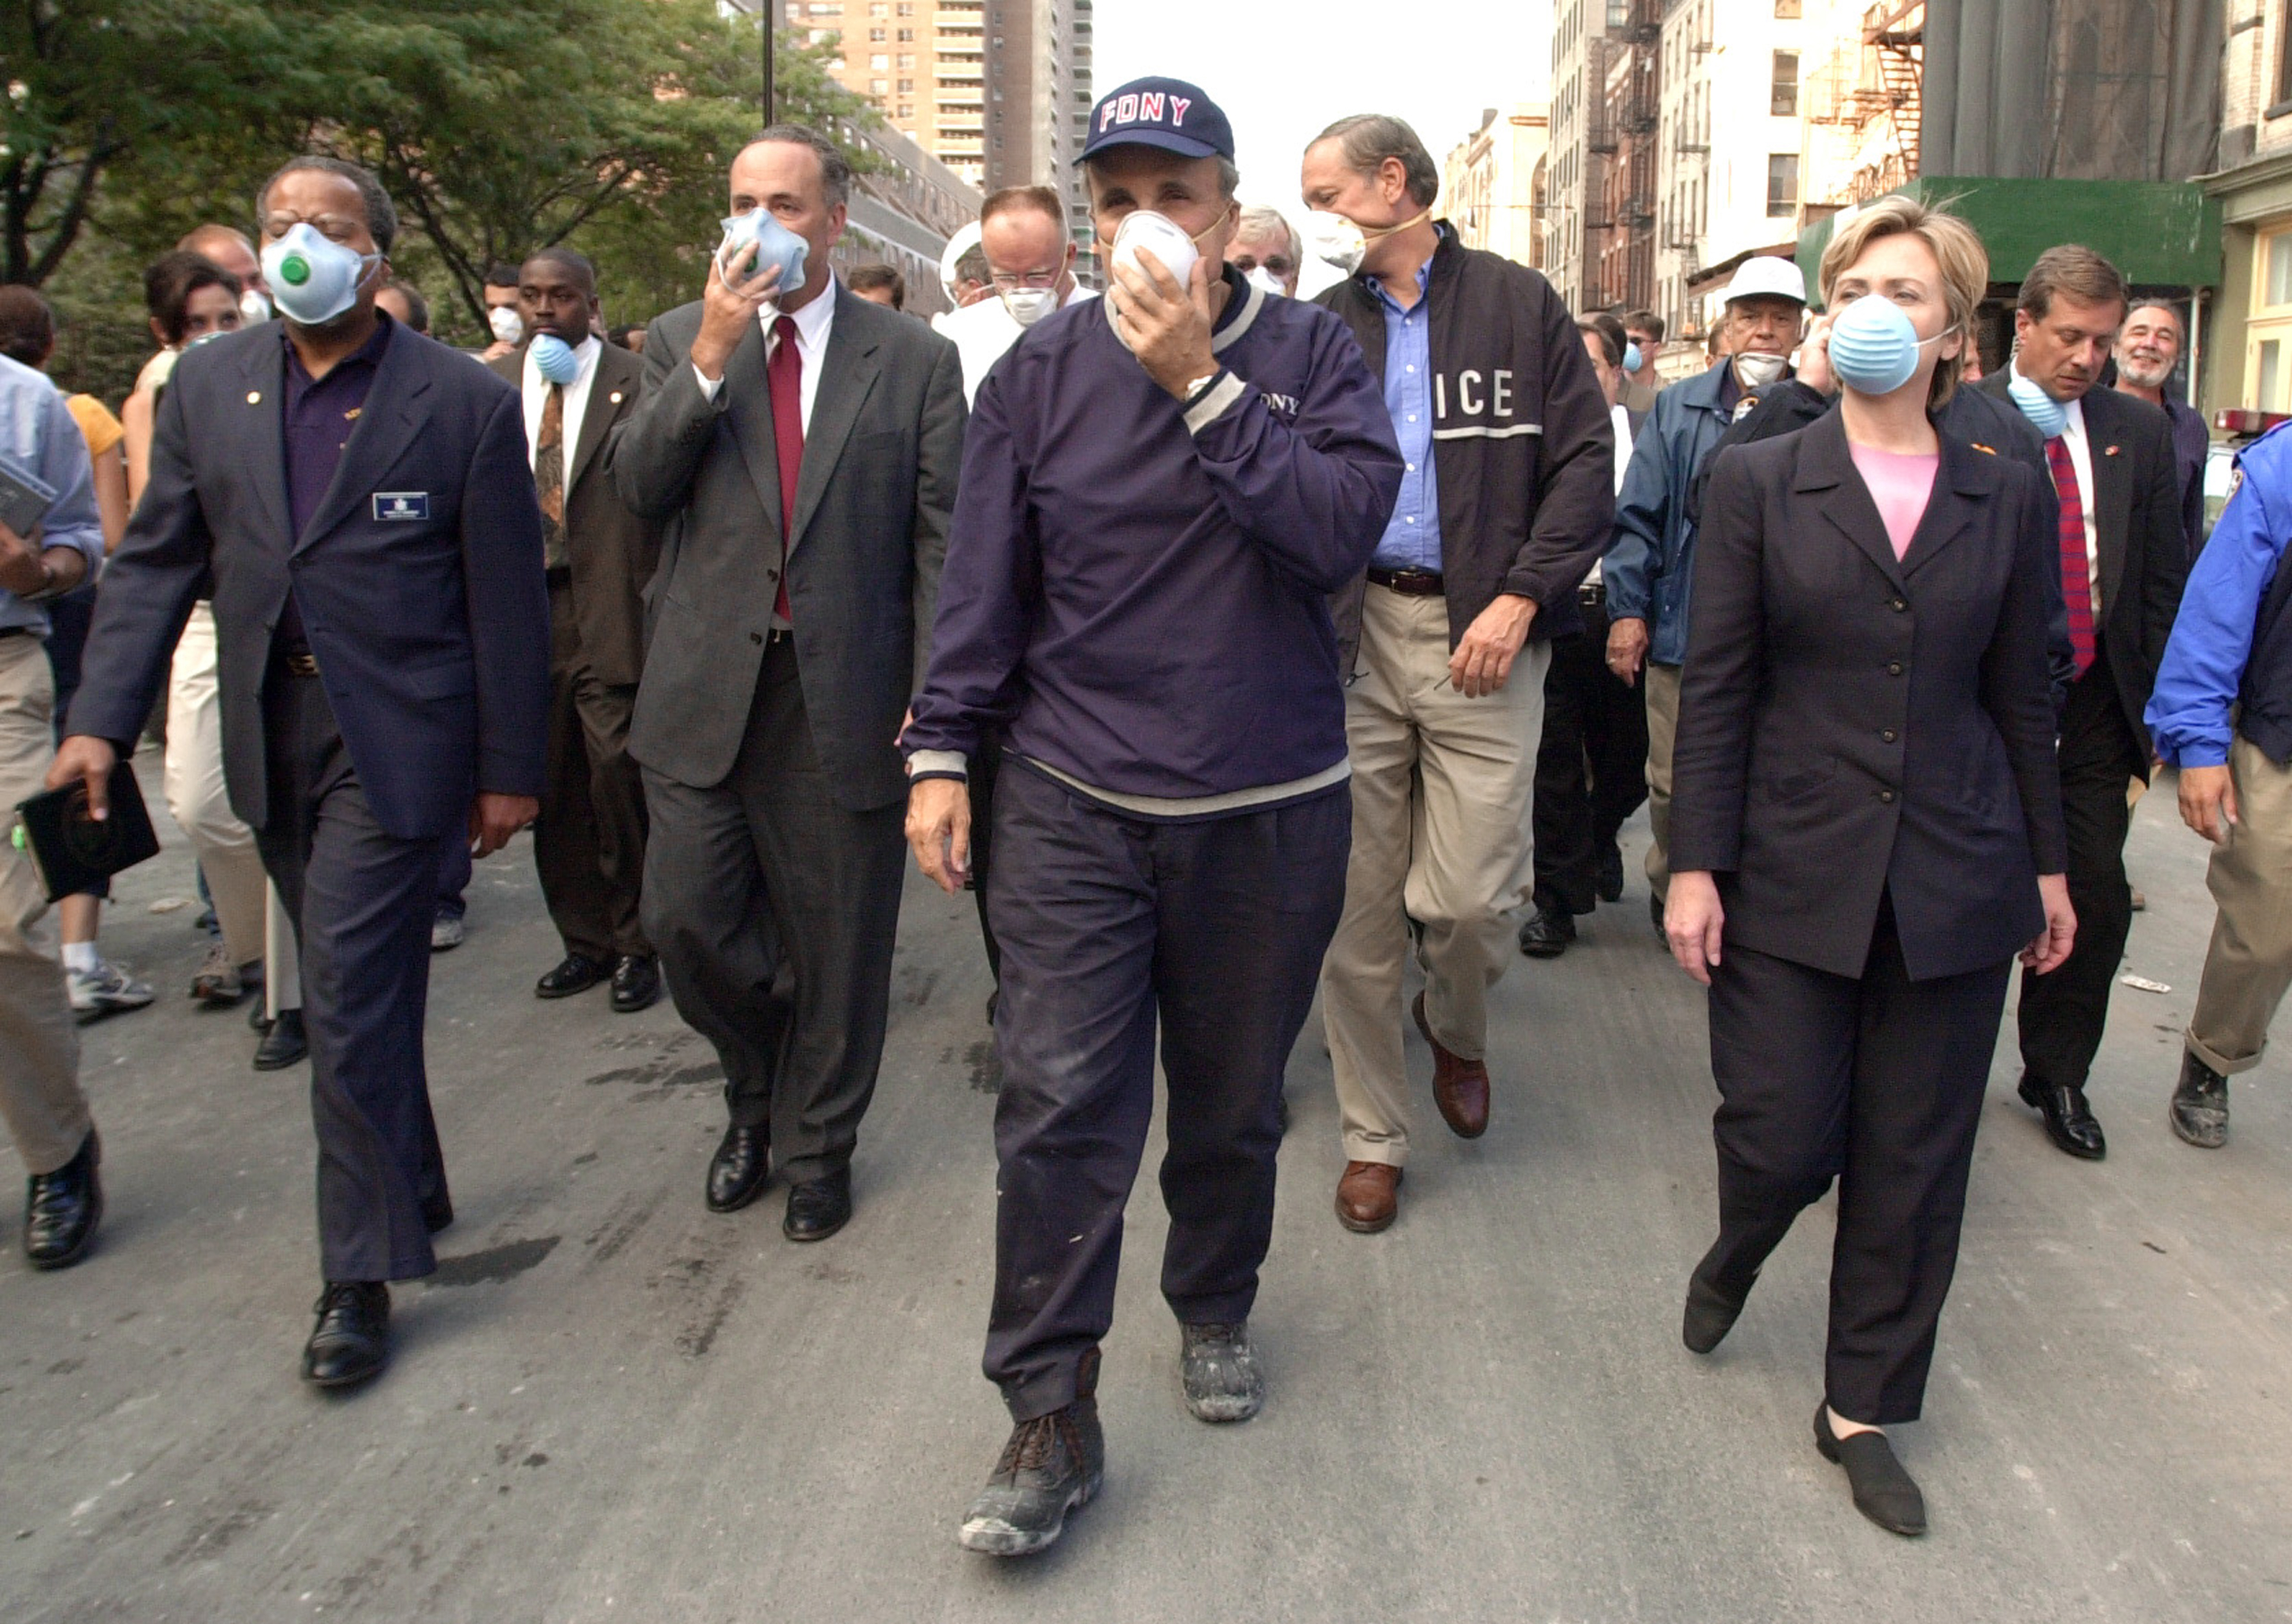 New York City Mayor Rudolph Giuliani (center) leads US Senator Charles Schumer, R-NY (second from left), New York Governor George Pataki (second from right) and US Senator Hillary Rodham Clinton, D-NY (right), on a tour of the site of the World Trade Center disaster in New York on Sept. 12, 2001.